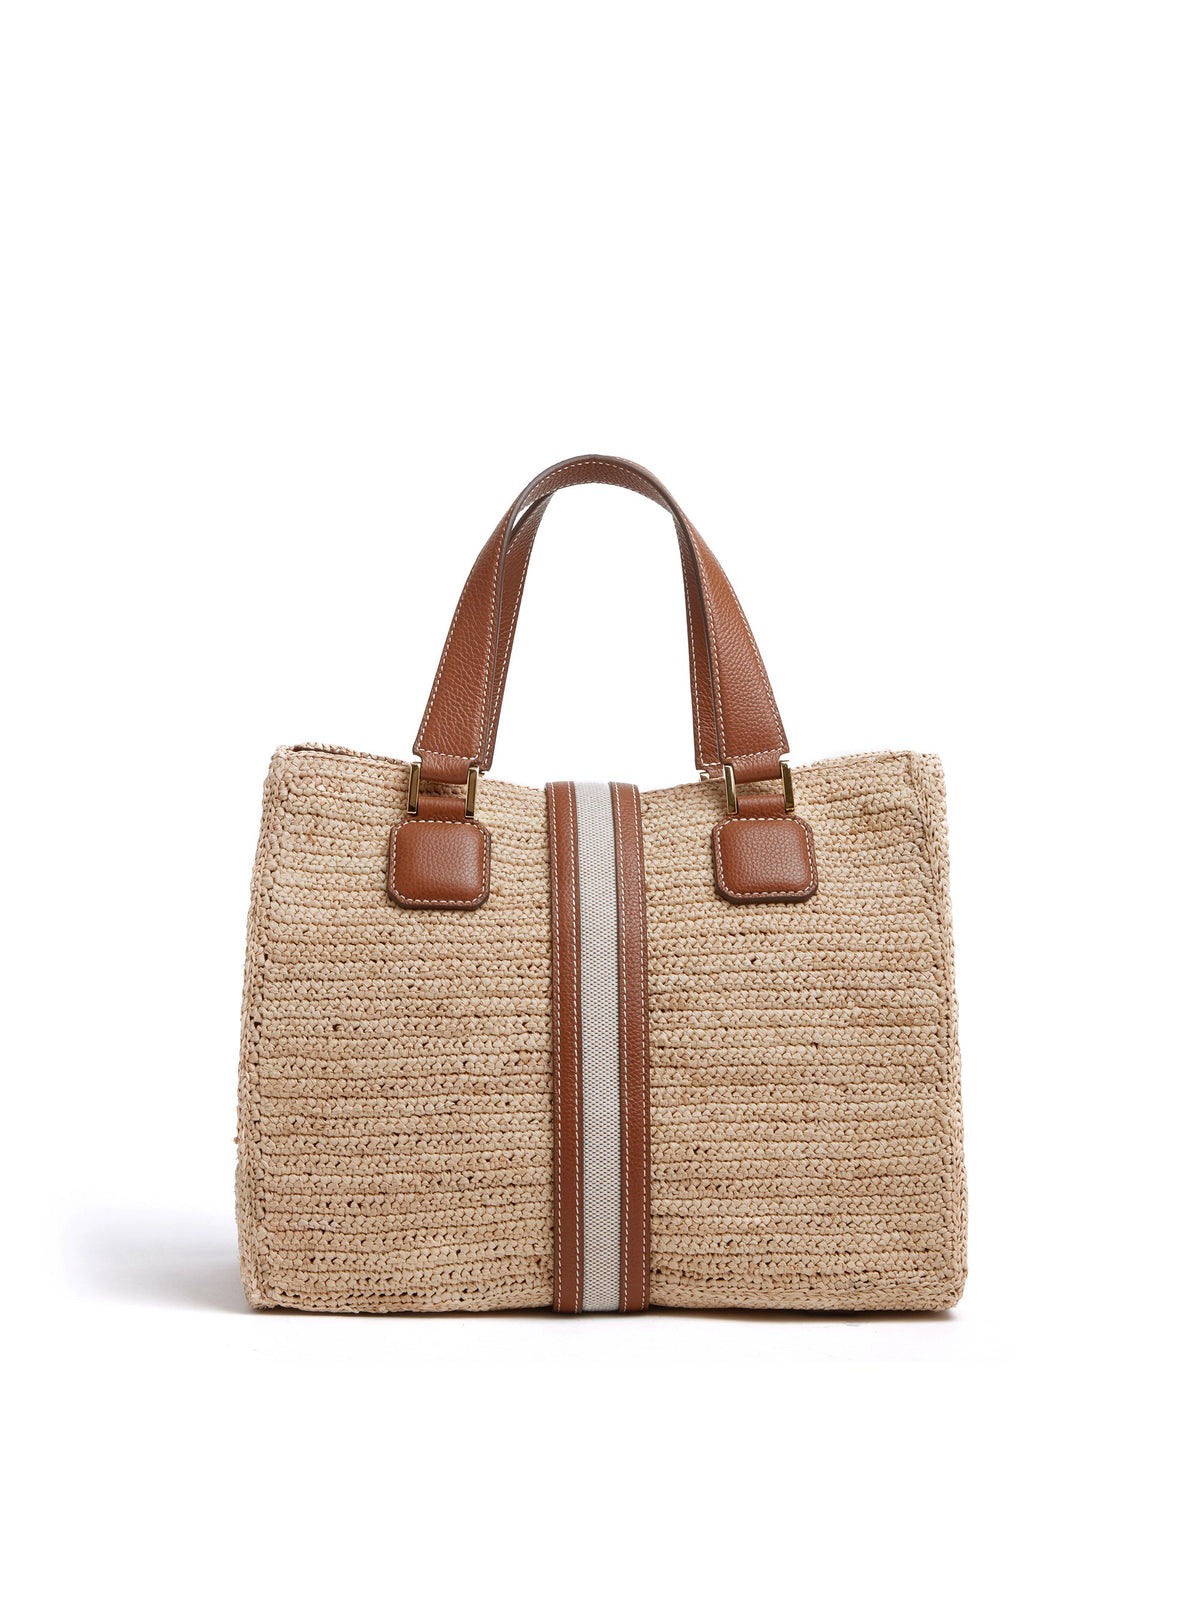 Mark Cross Riviera Raffia & Leather Tote Bag Tumbled Grain Acorn / Birdseye / Natural Raffia Back